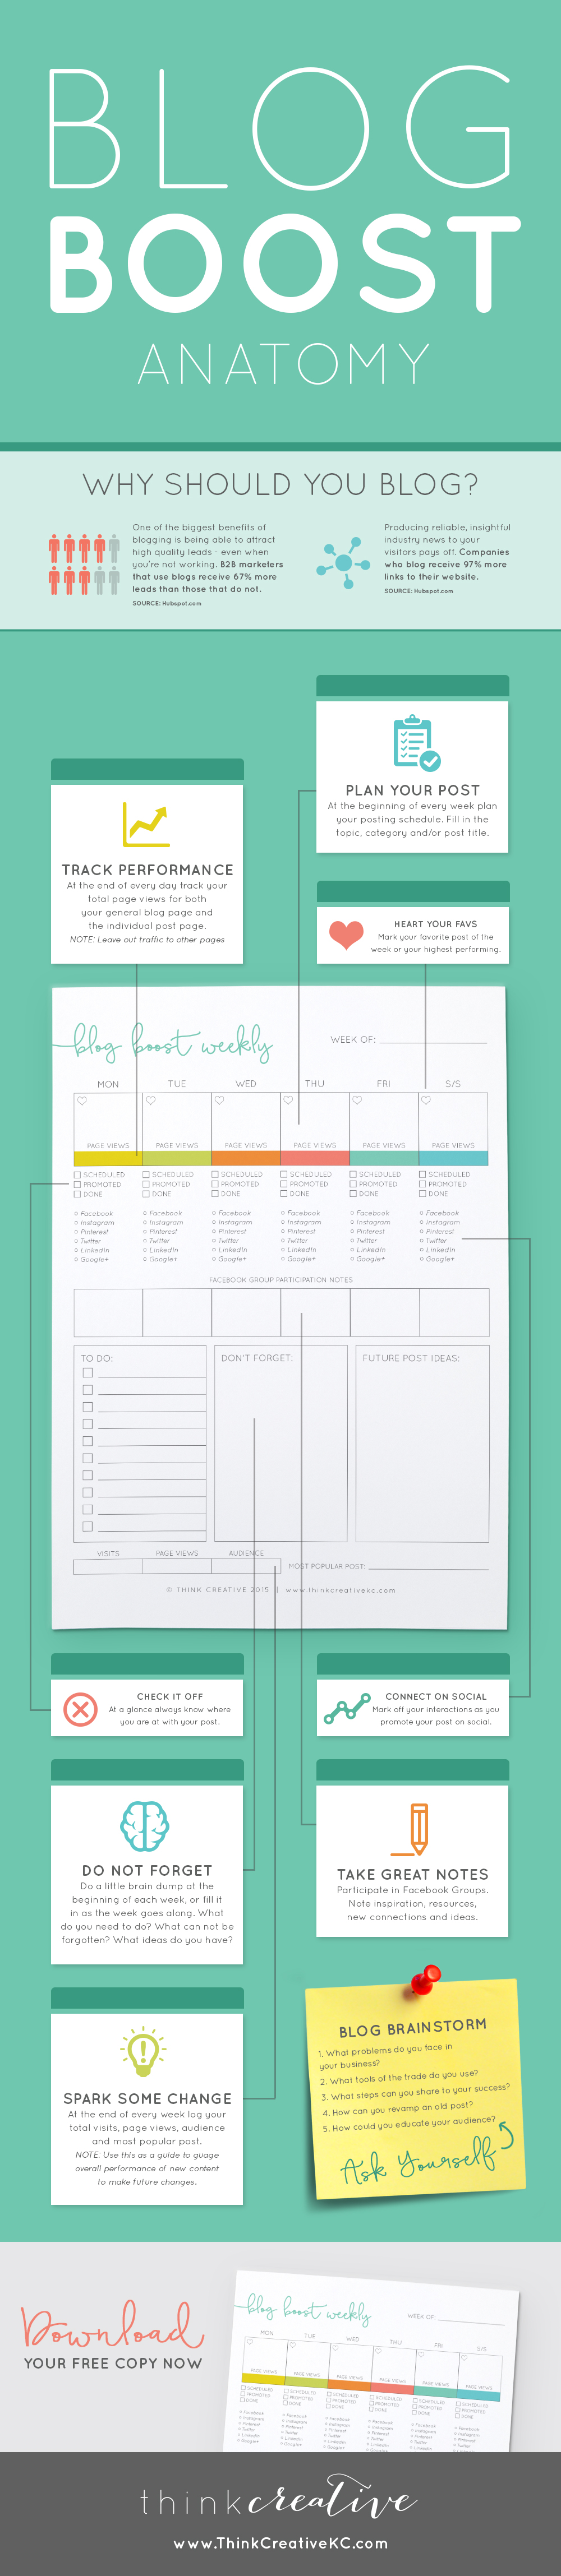 Blog Boost Anatomy  |  How to Use the Blog Boost Weekly Worksheet  |  Think Creative